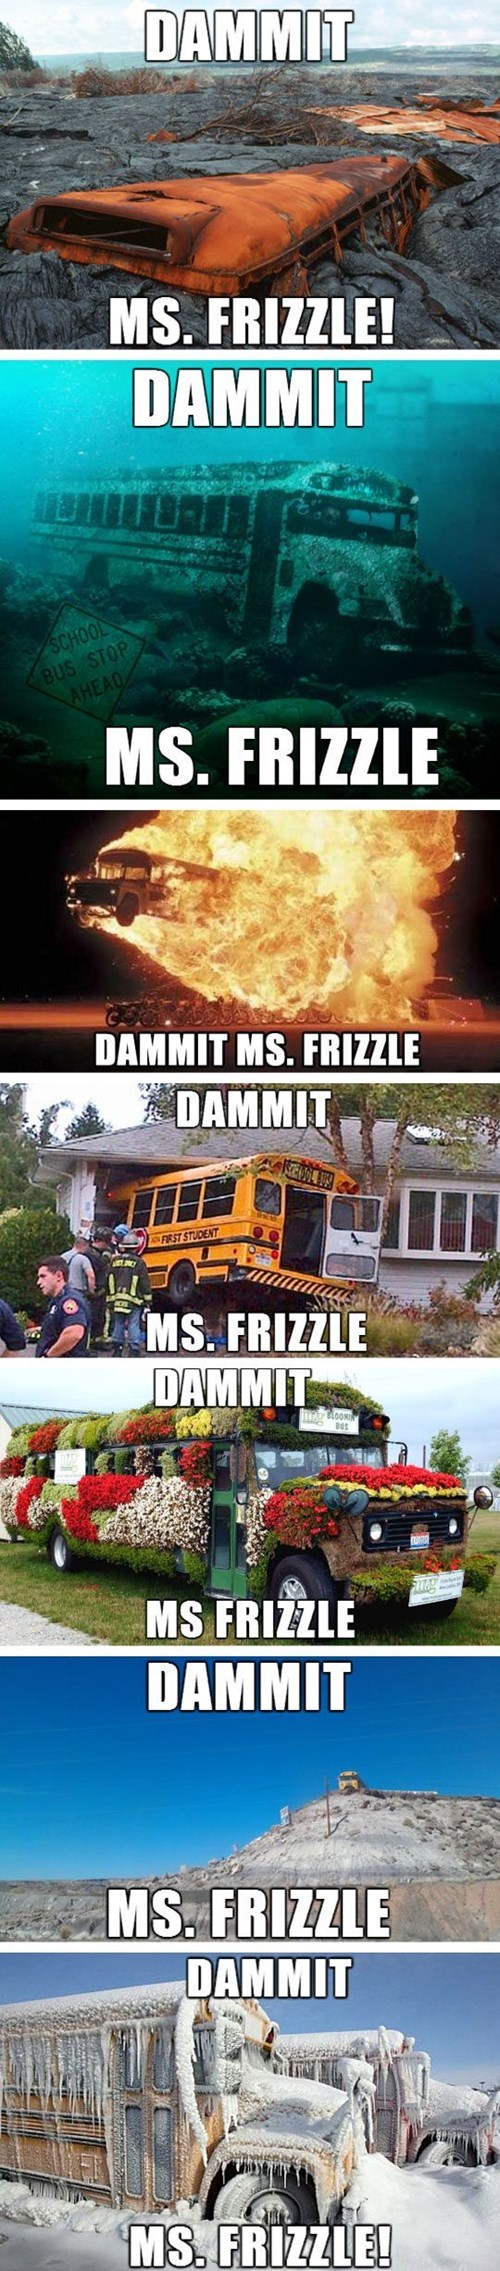 cartoon memes dammit ms frizzle